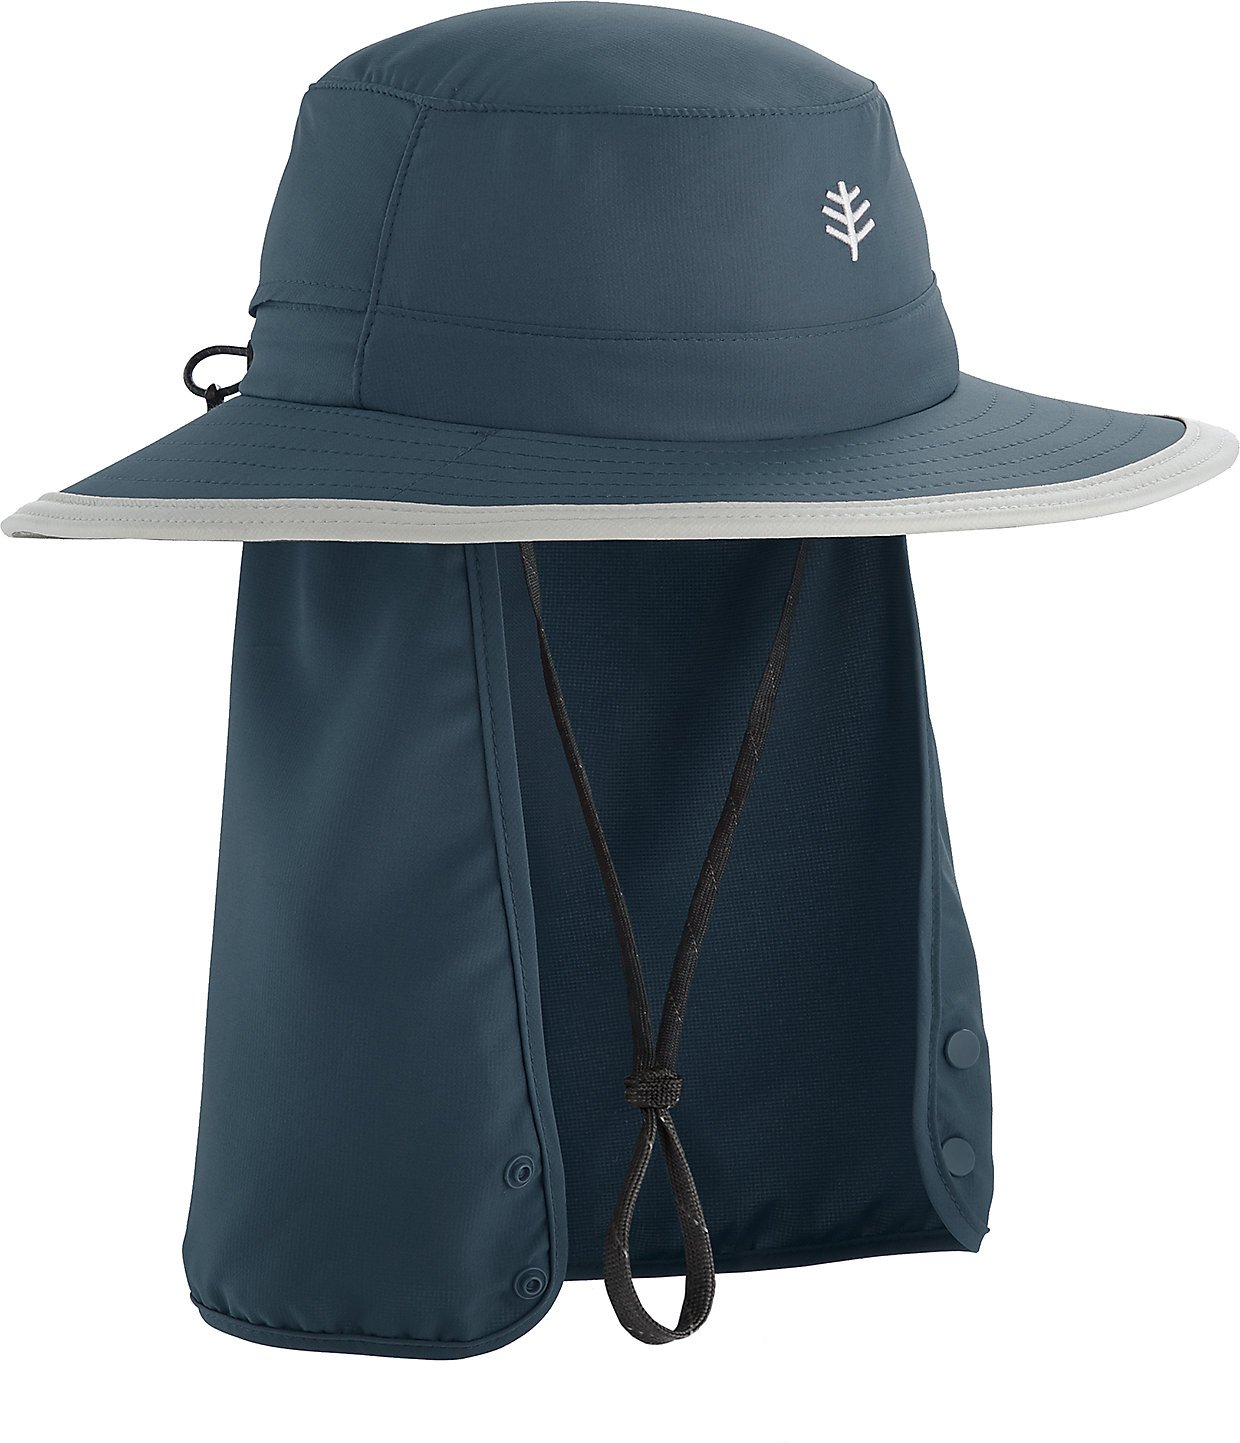 Coolibar UPF 50+ Kids' Convertible Boating Hat - Sun Protective (Large/X-Large- Midnight)